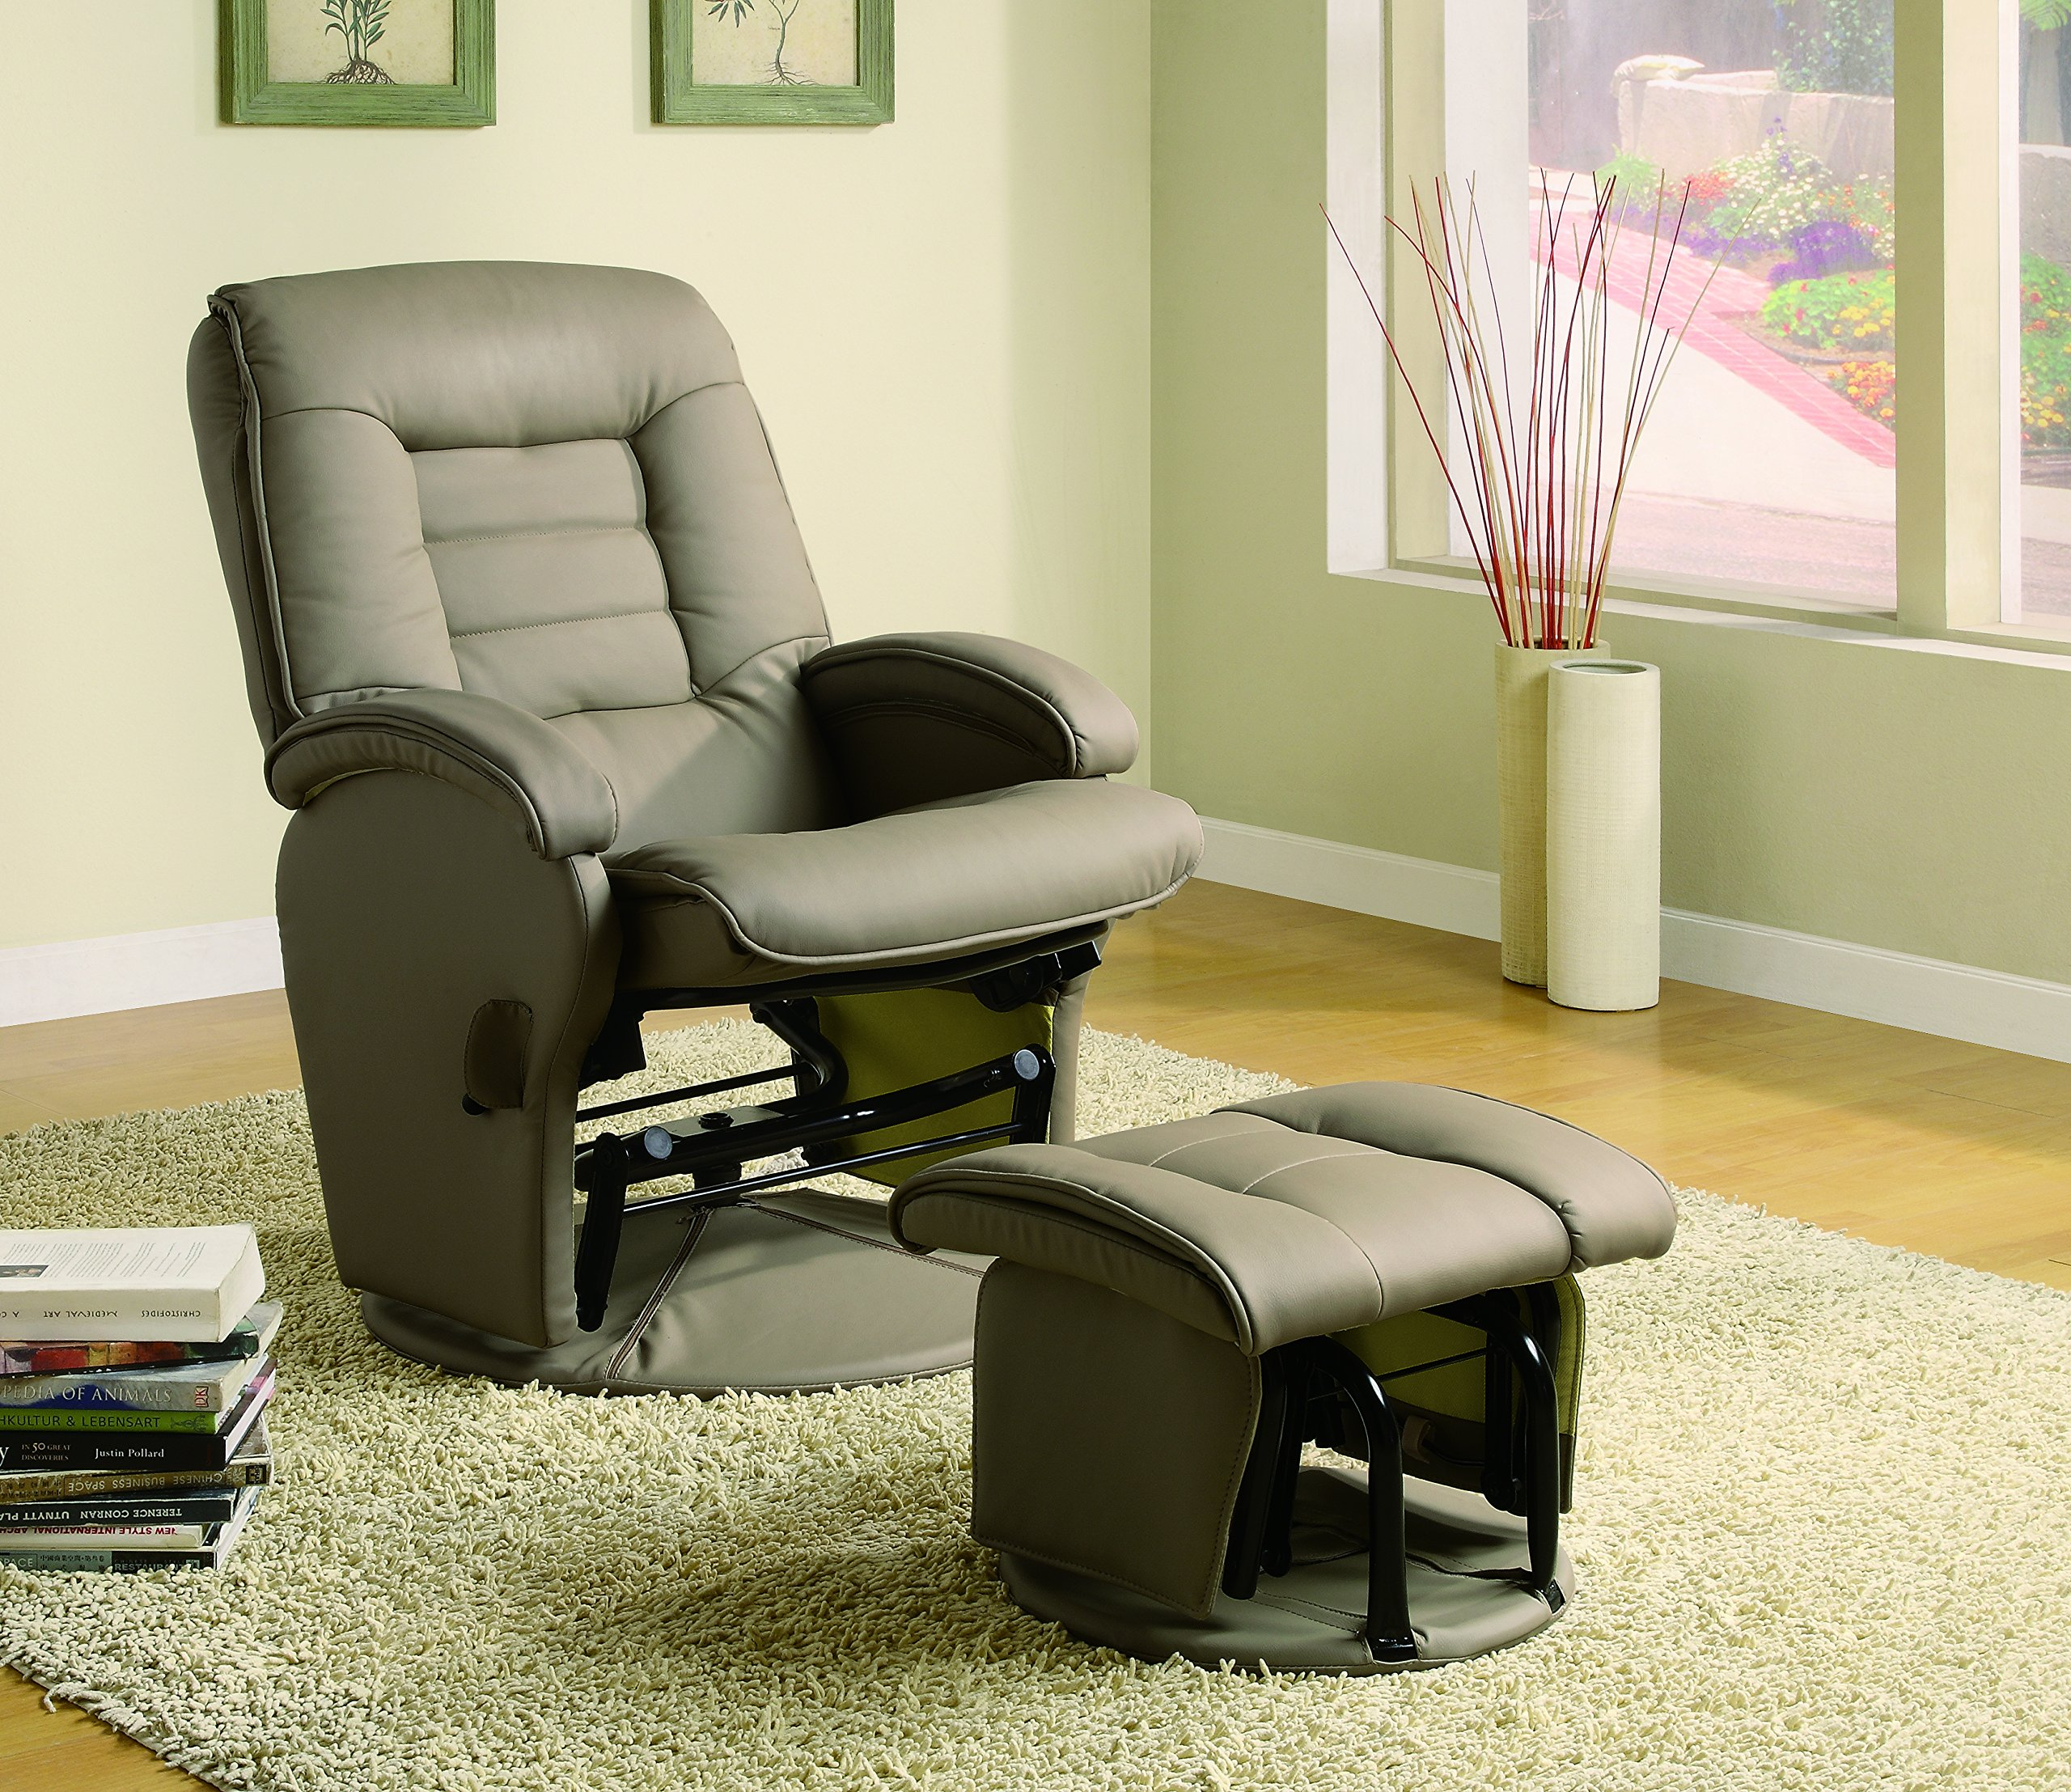 Leather Like Vinyl Glider Recliner with Matching Ottoman Bone by Coaster Home Furnishings